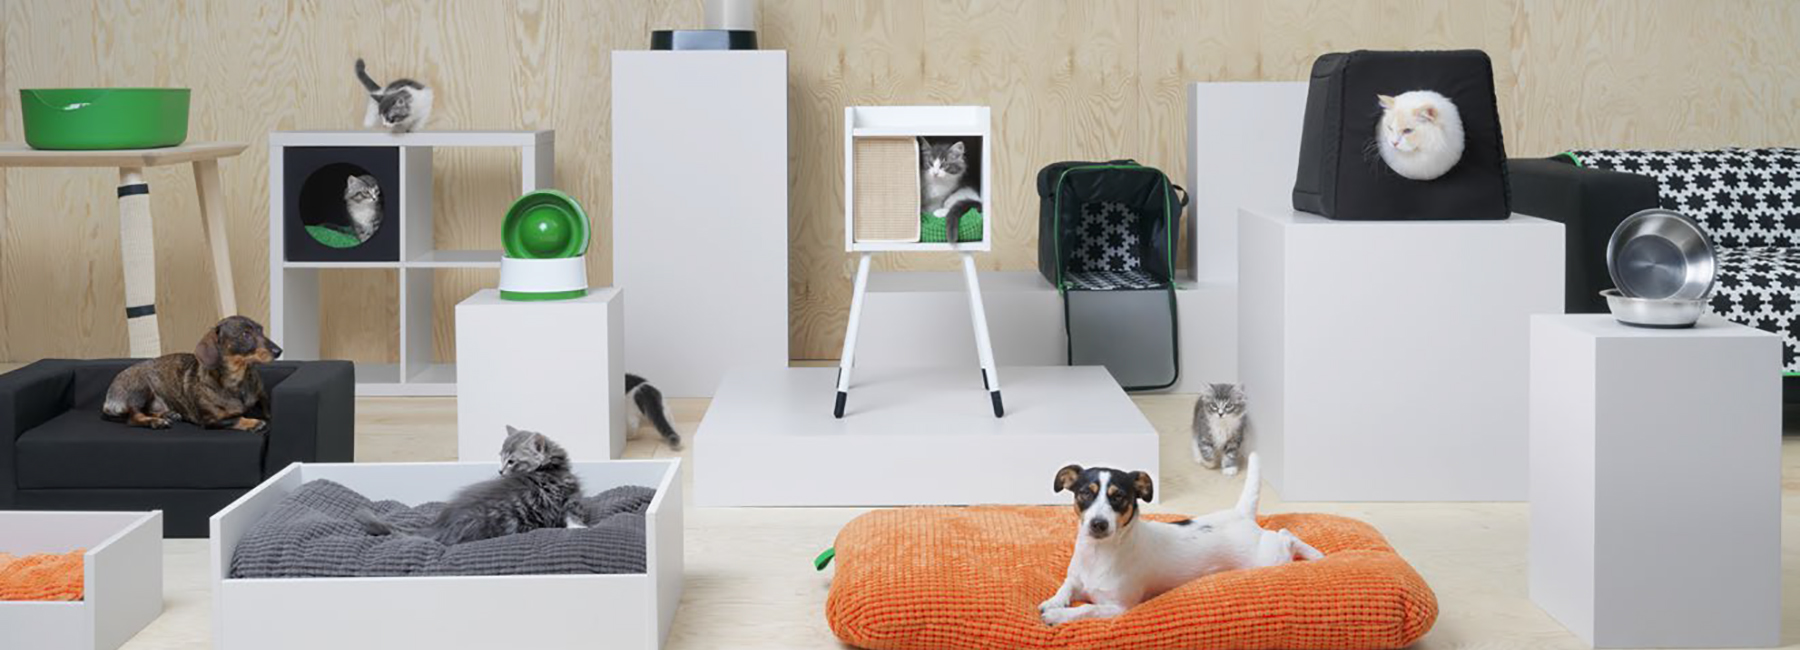 Ikea Möbel Namen Ikea Introduces Lurvig A Collection Of Furniture And